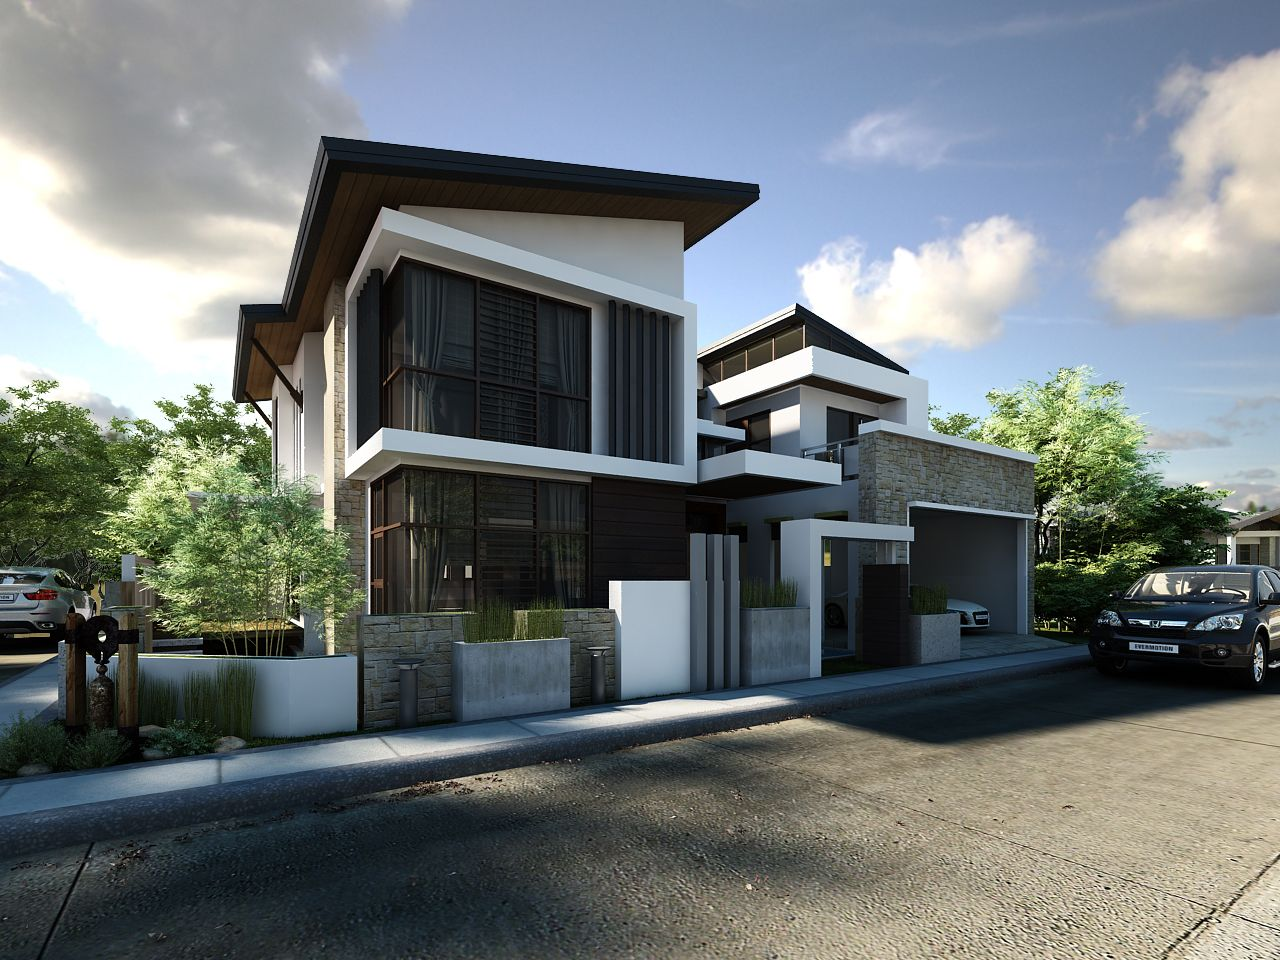 3d external render of 2 story house jpg 1280 960 renders 3d external render of 2 story house jpg